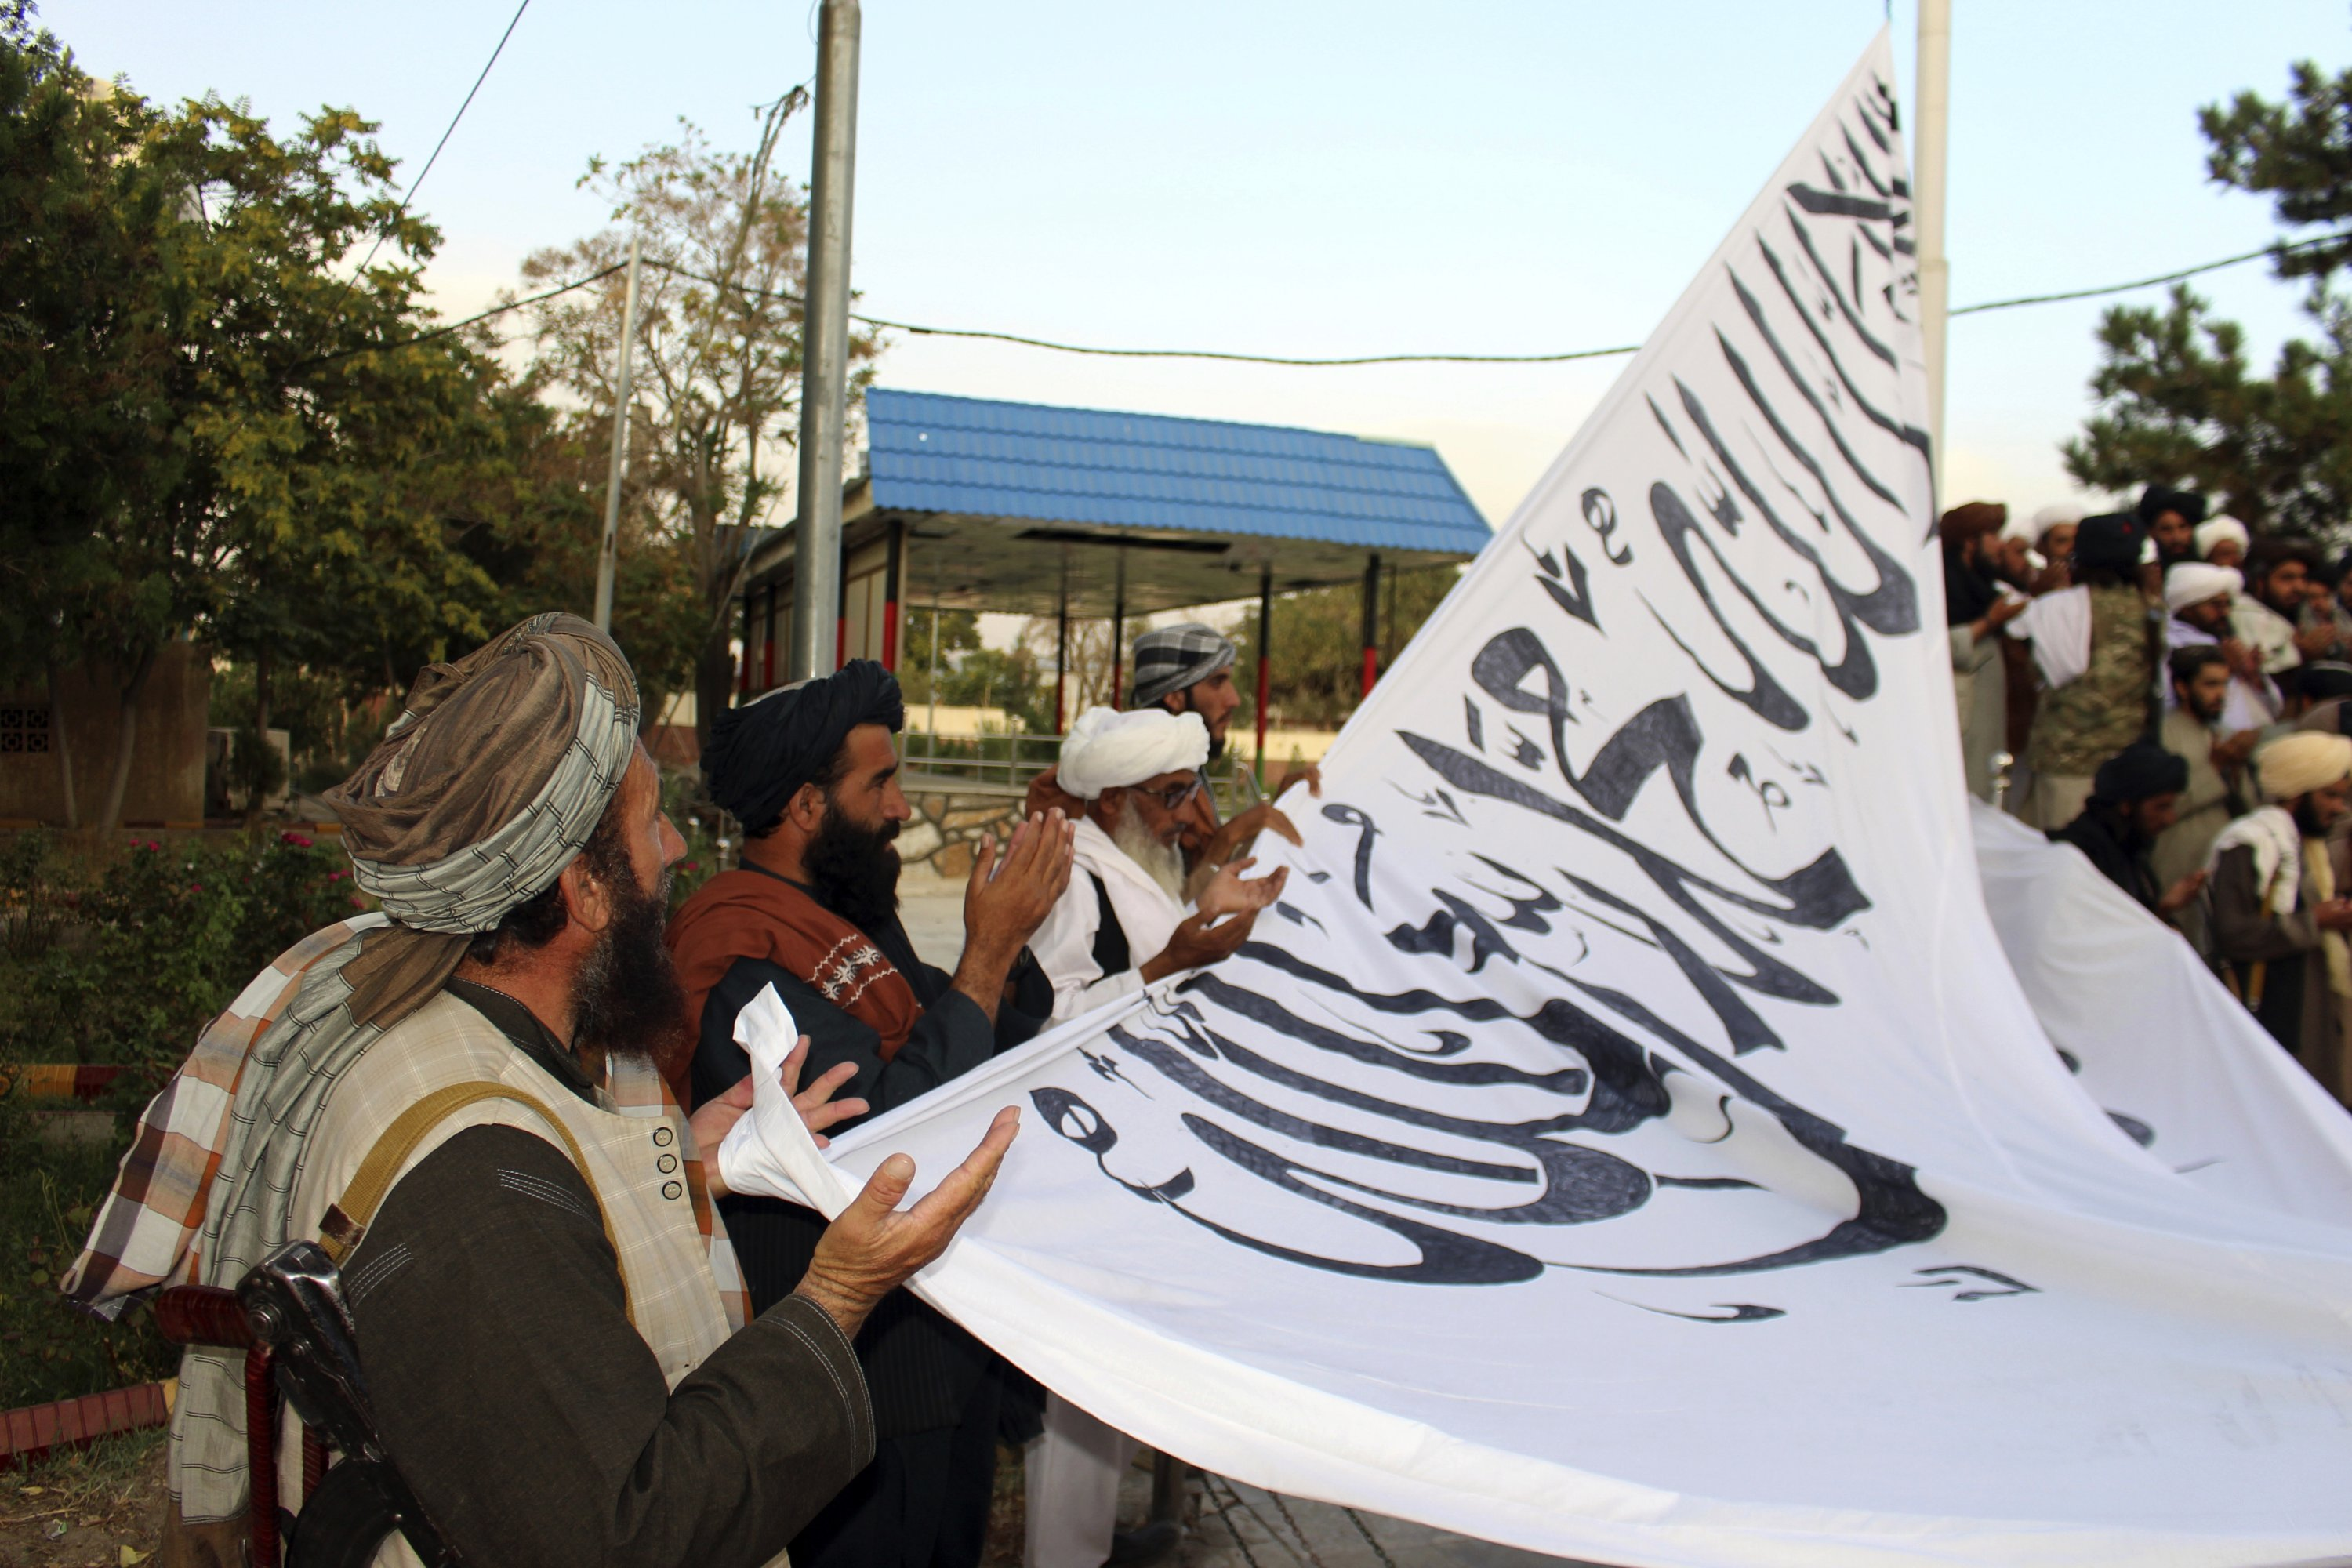 Taliban fighters pray while raising their flag at the Ghazni provincial governor's house, in Ghazni, southeastern Afghanistan, Aug. 15, 2021. (AP Photo)